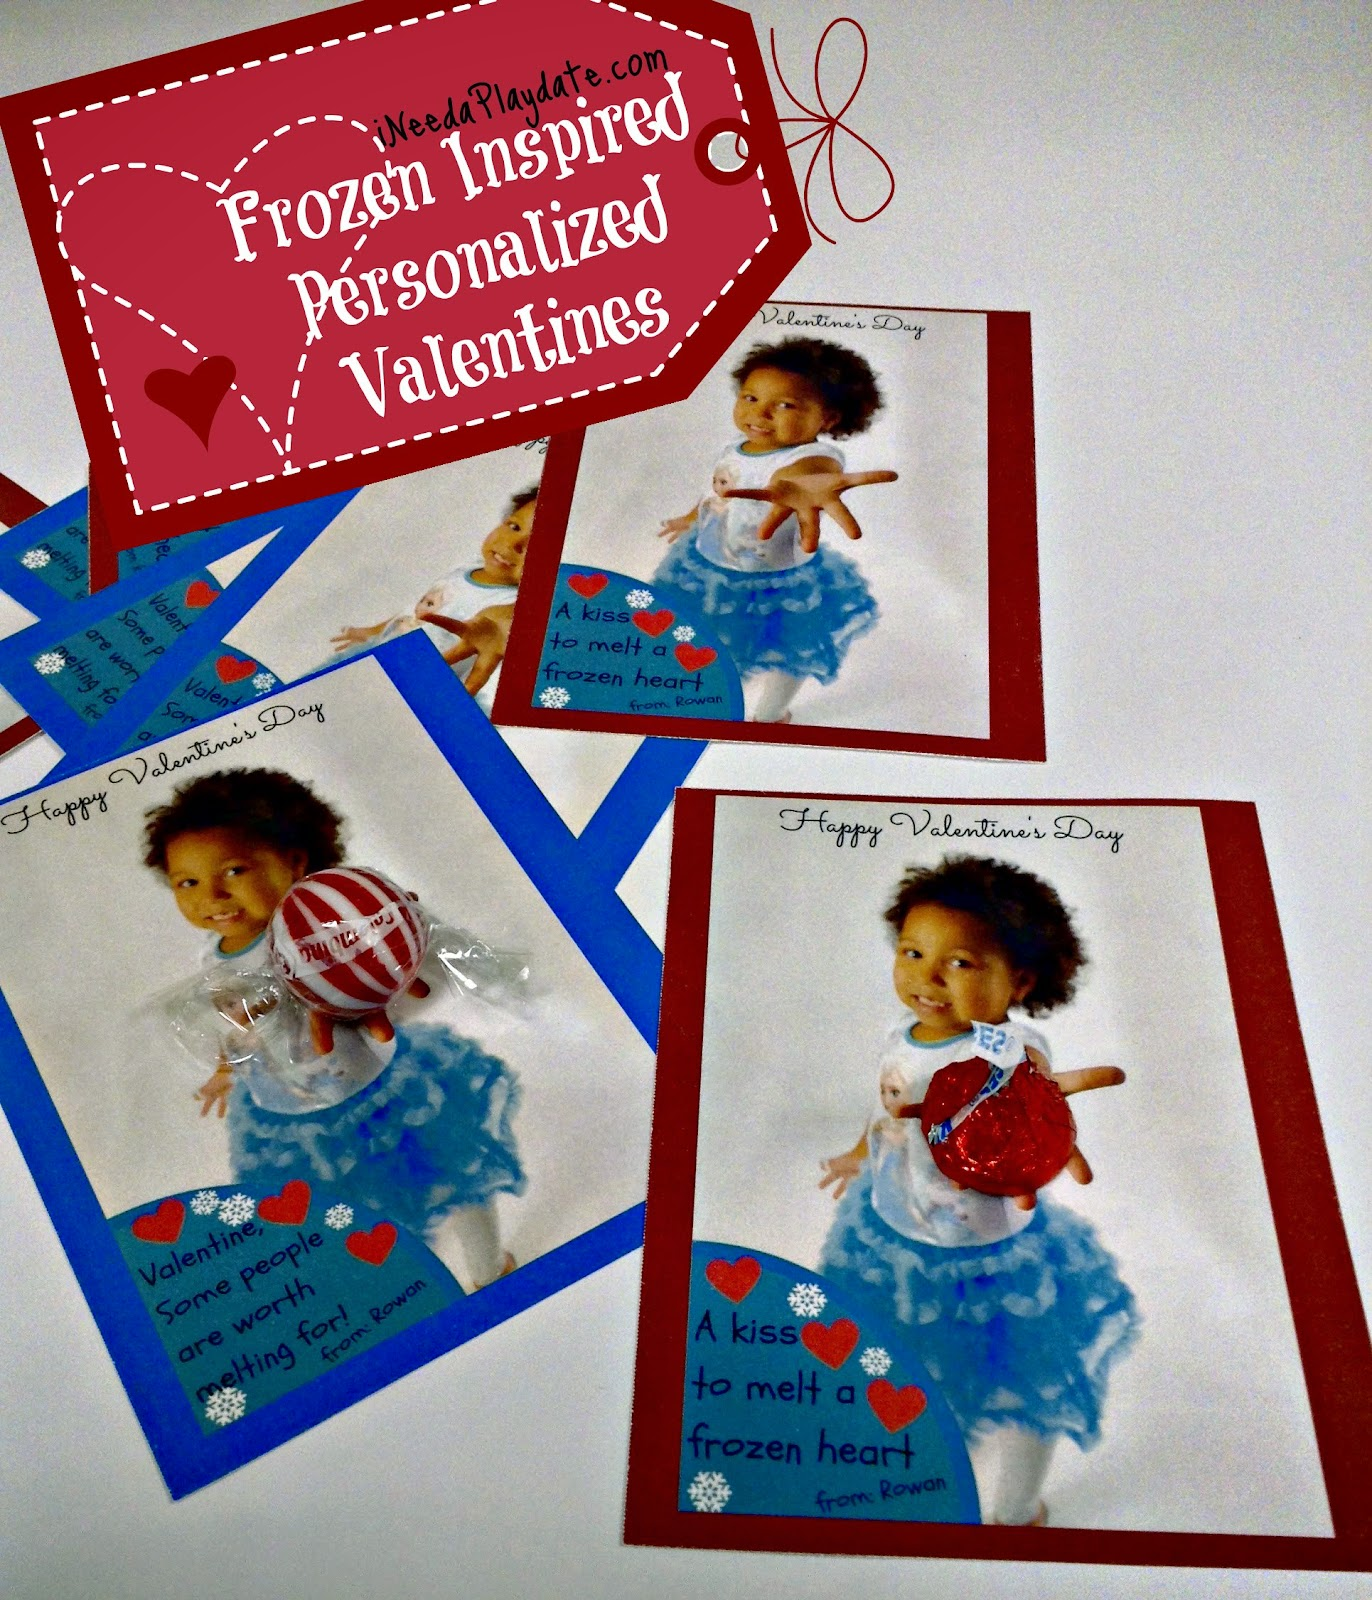 Finished #Frozen Inspired Personalized Valentine